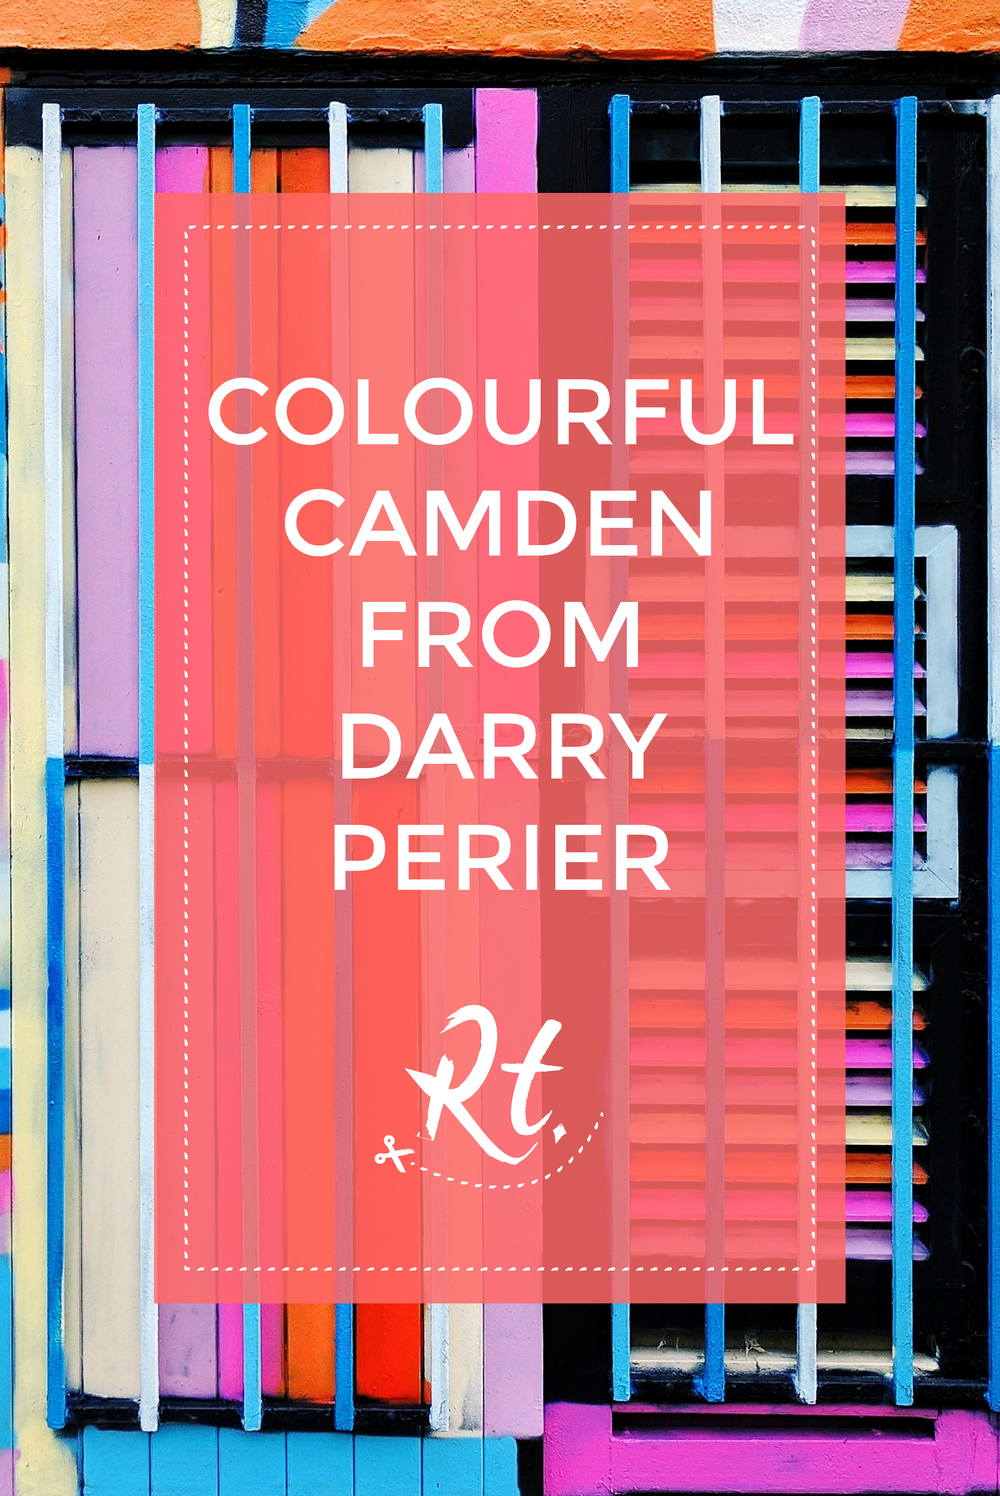 Darry Perier Colourful Camden Town